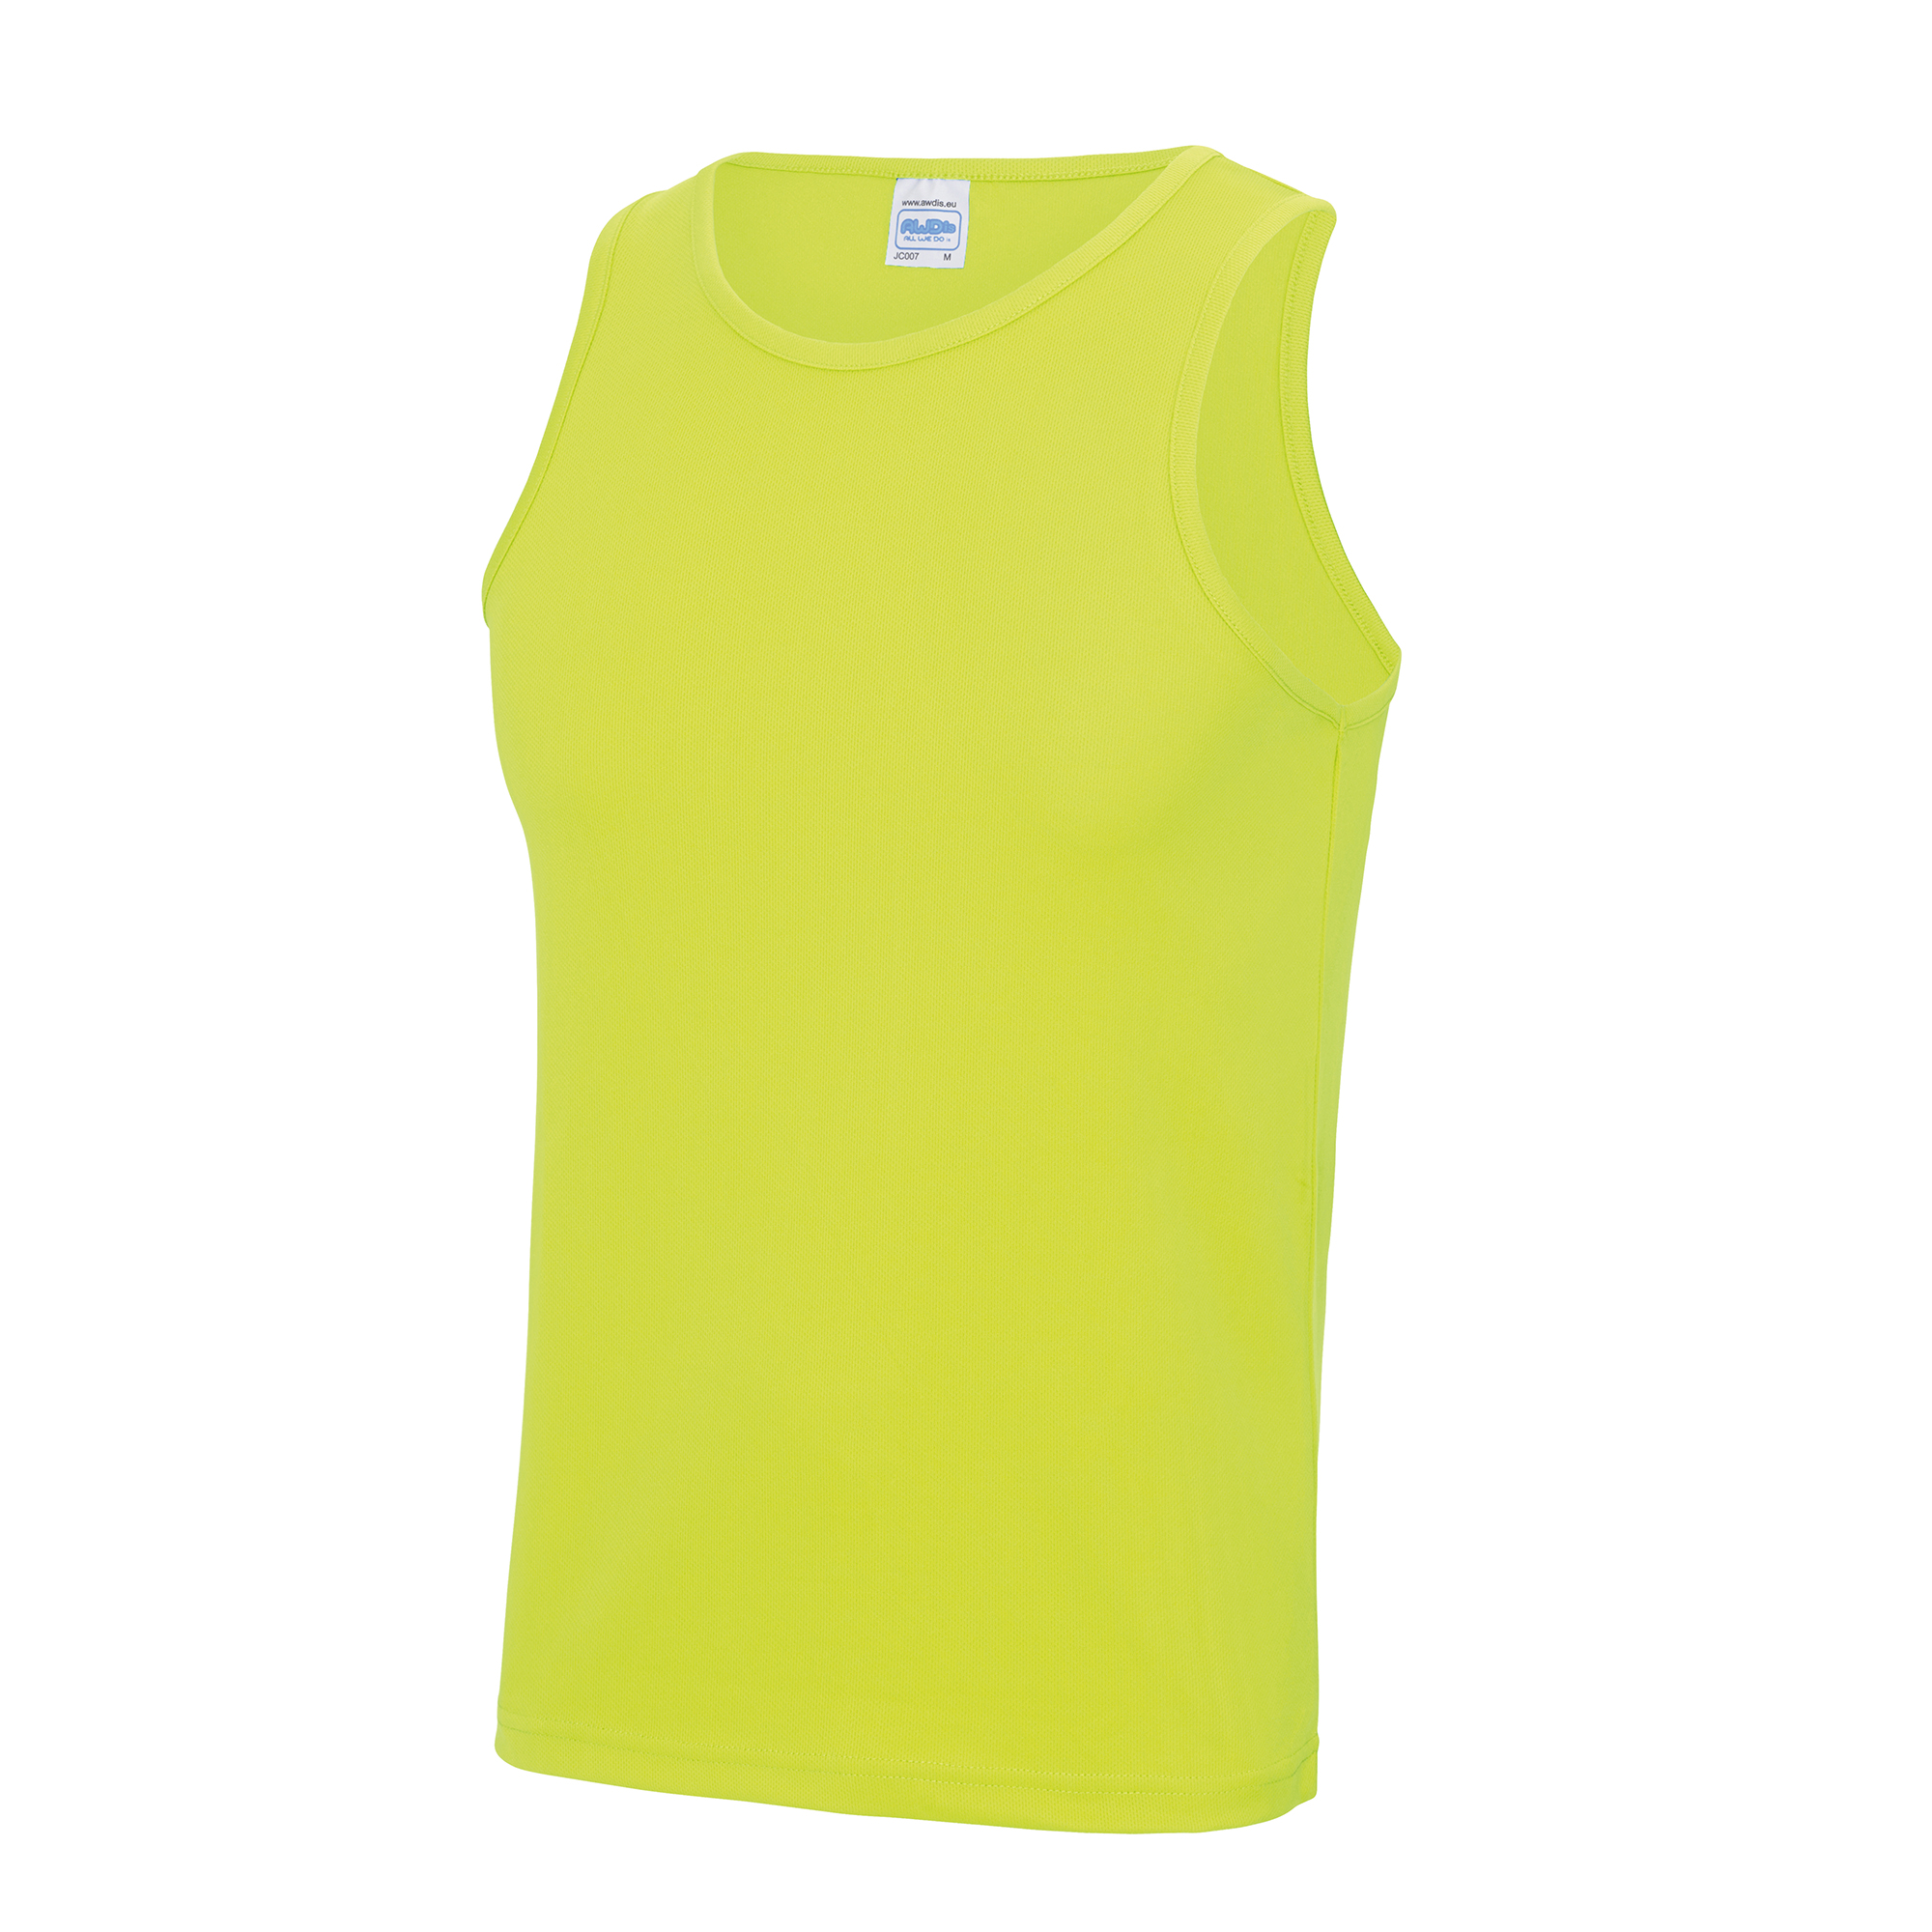 Find great deals on eBay for Sport Vest in Men's Vest and Clothing. Shop with confidence. Find great deals on eBay for Sport Vest in Men's Vest and Clothing. Shop with confidence. Men Workout Vest Tank Top Bodybuilding Gym Muscle Fitness Football Shirt Singlet. $ Buy It Now. Free Shipping.